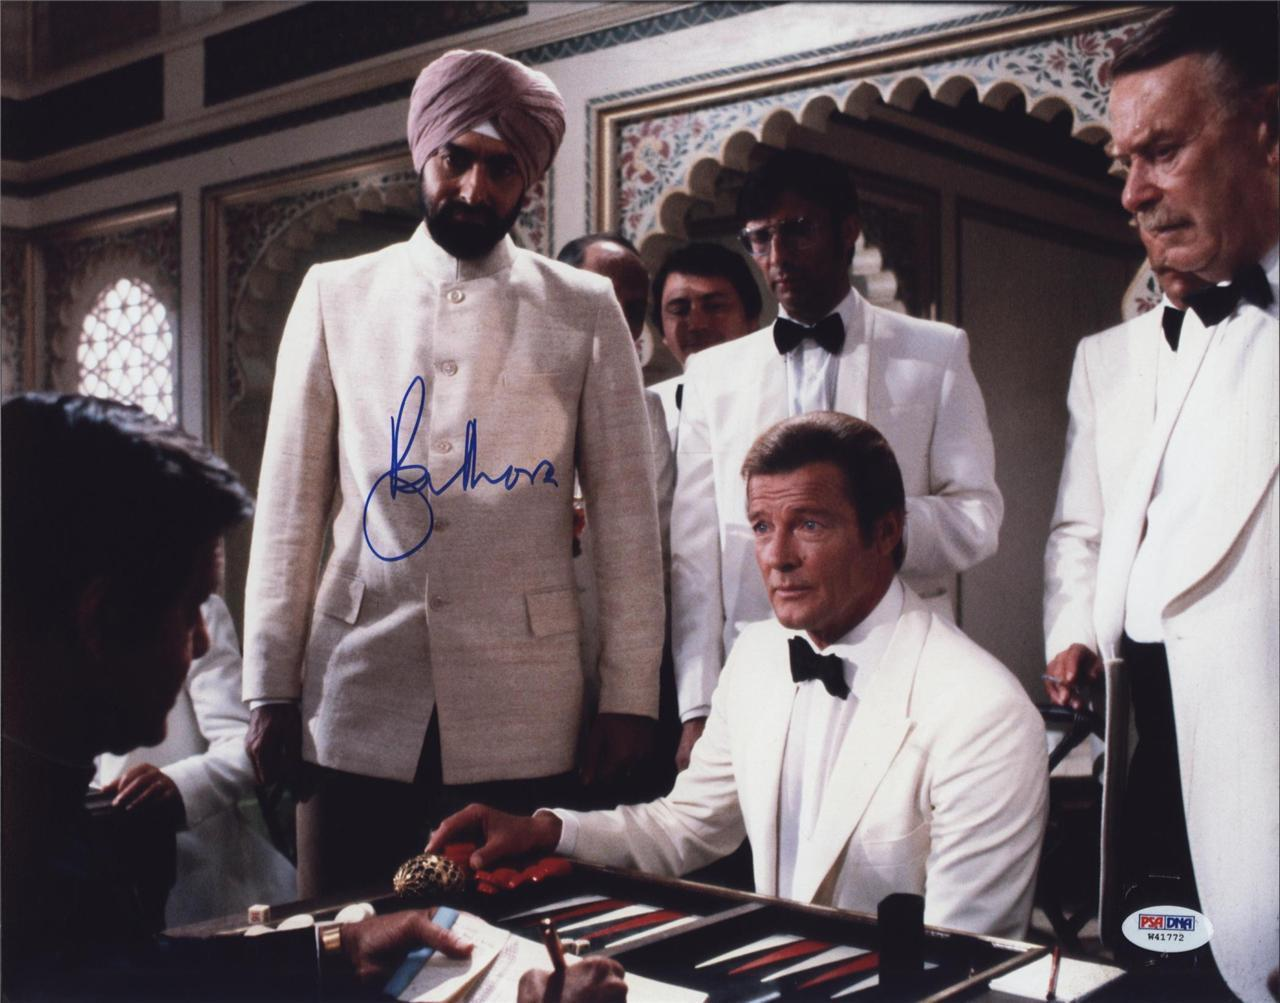 Roger Moore Signed Authentic Photo 11x14 James Bond 007 Psa W41772